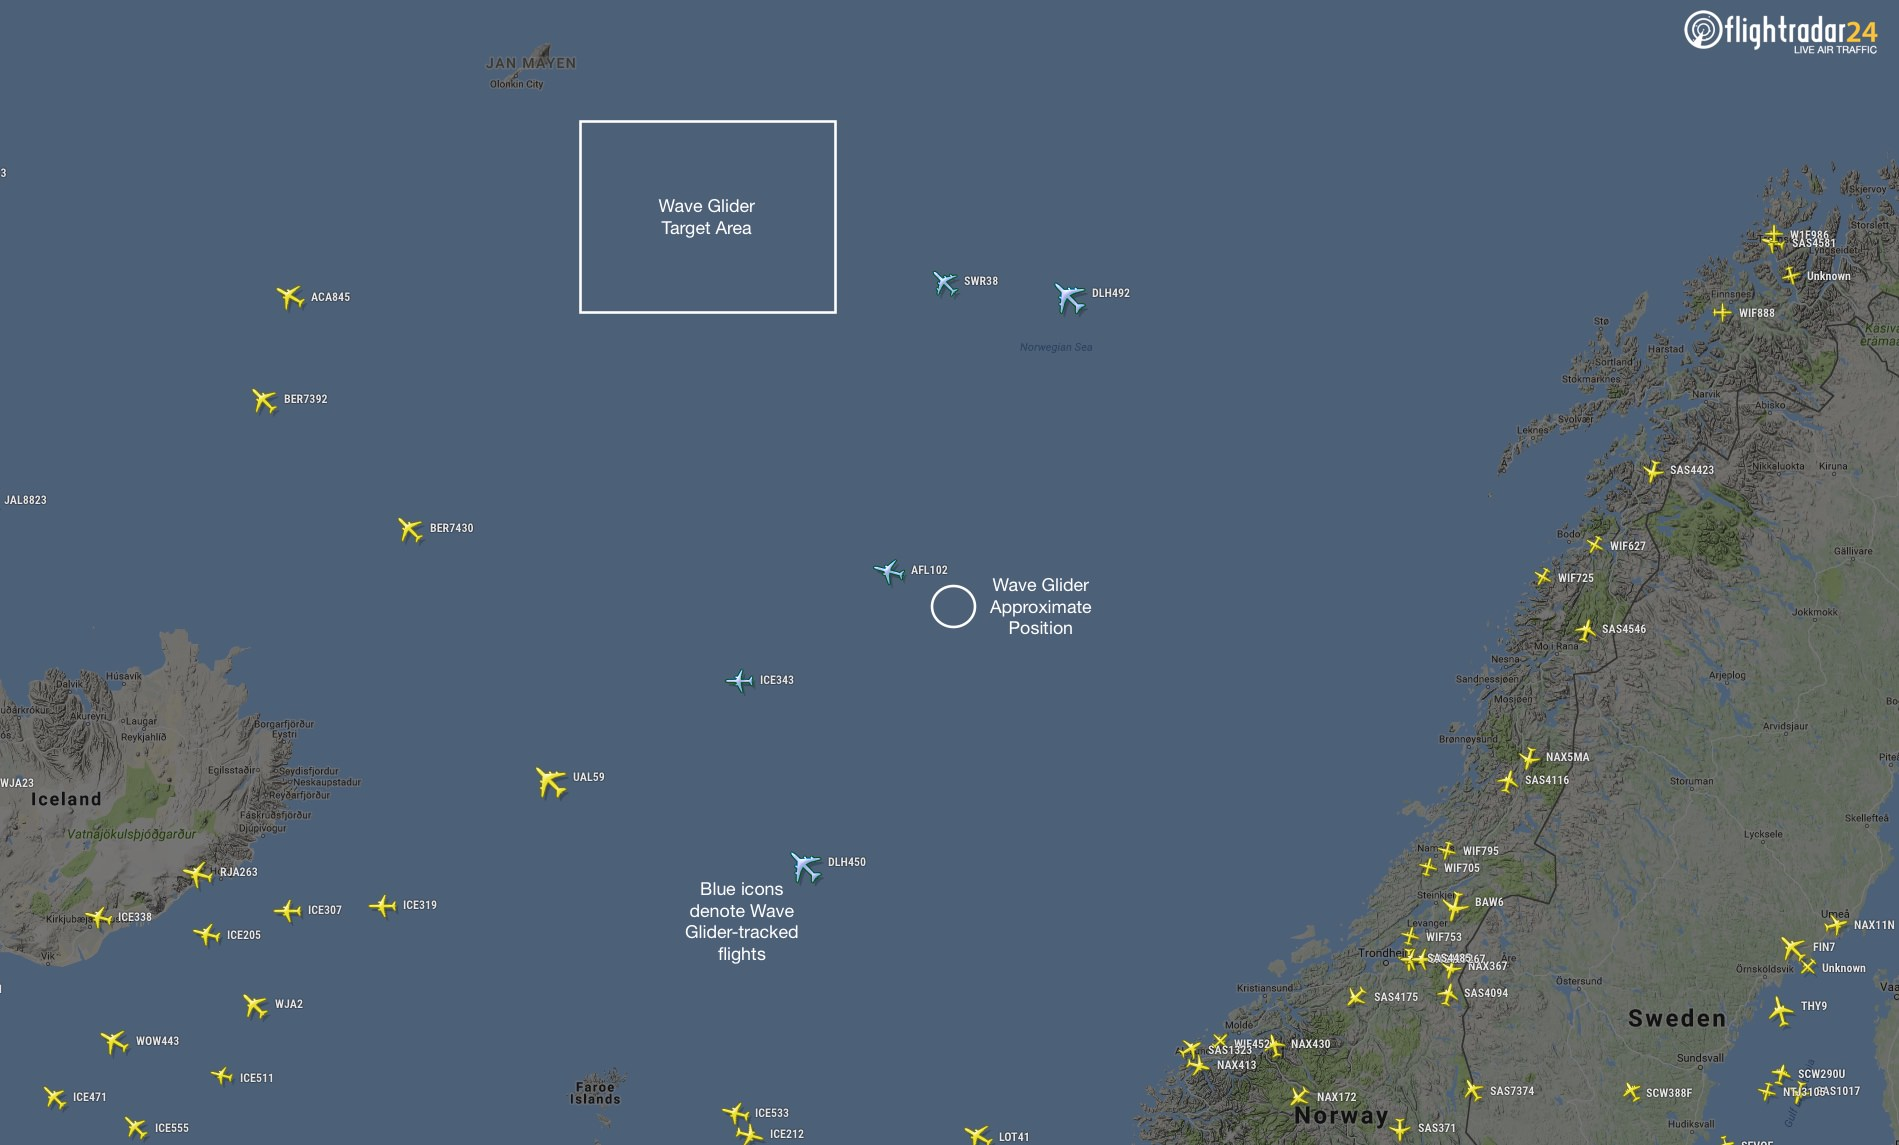 The Wave Glider is tracking flights on its way to the target area near Jan Mayen